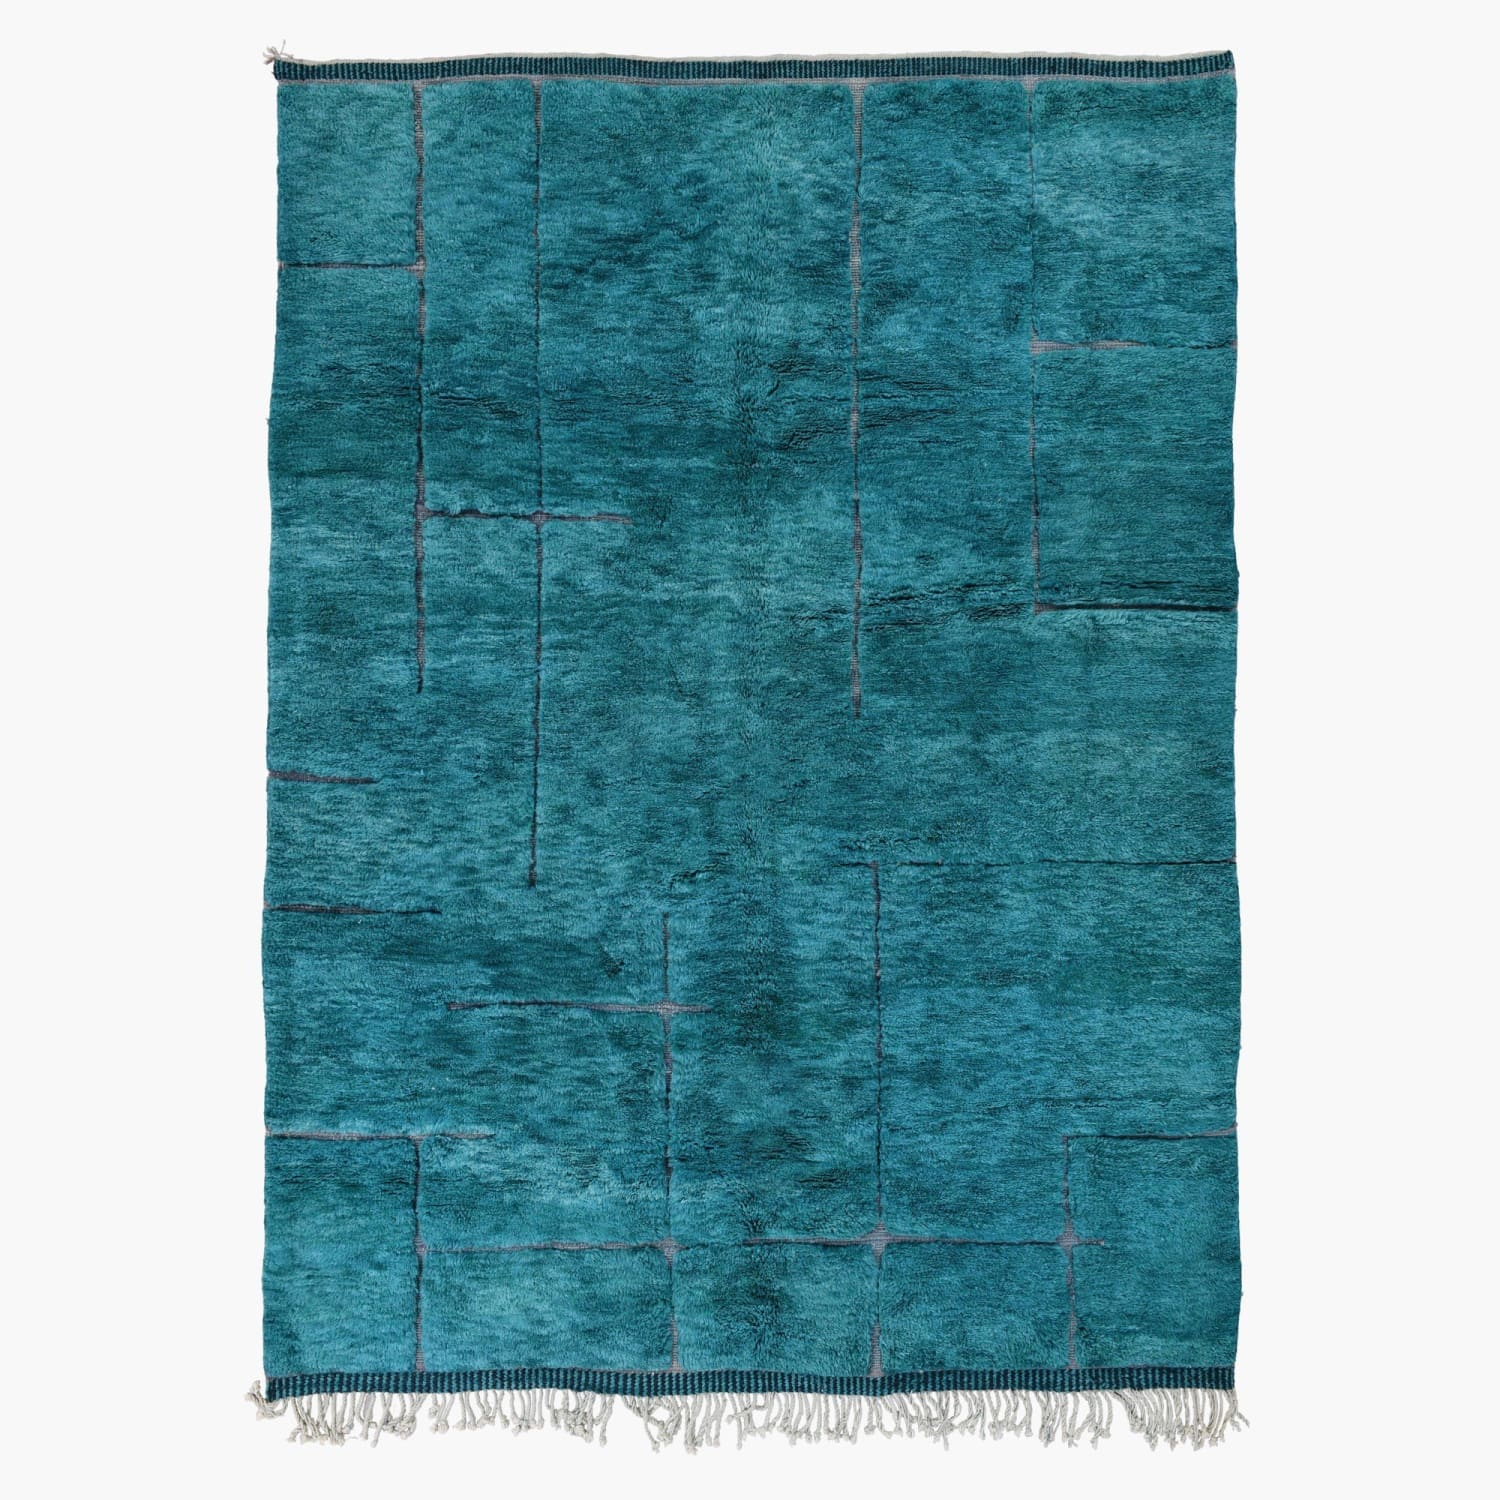 "Mermaid - Luxury Mrirt Rug ""Exclusive"" - BENISOUK"